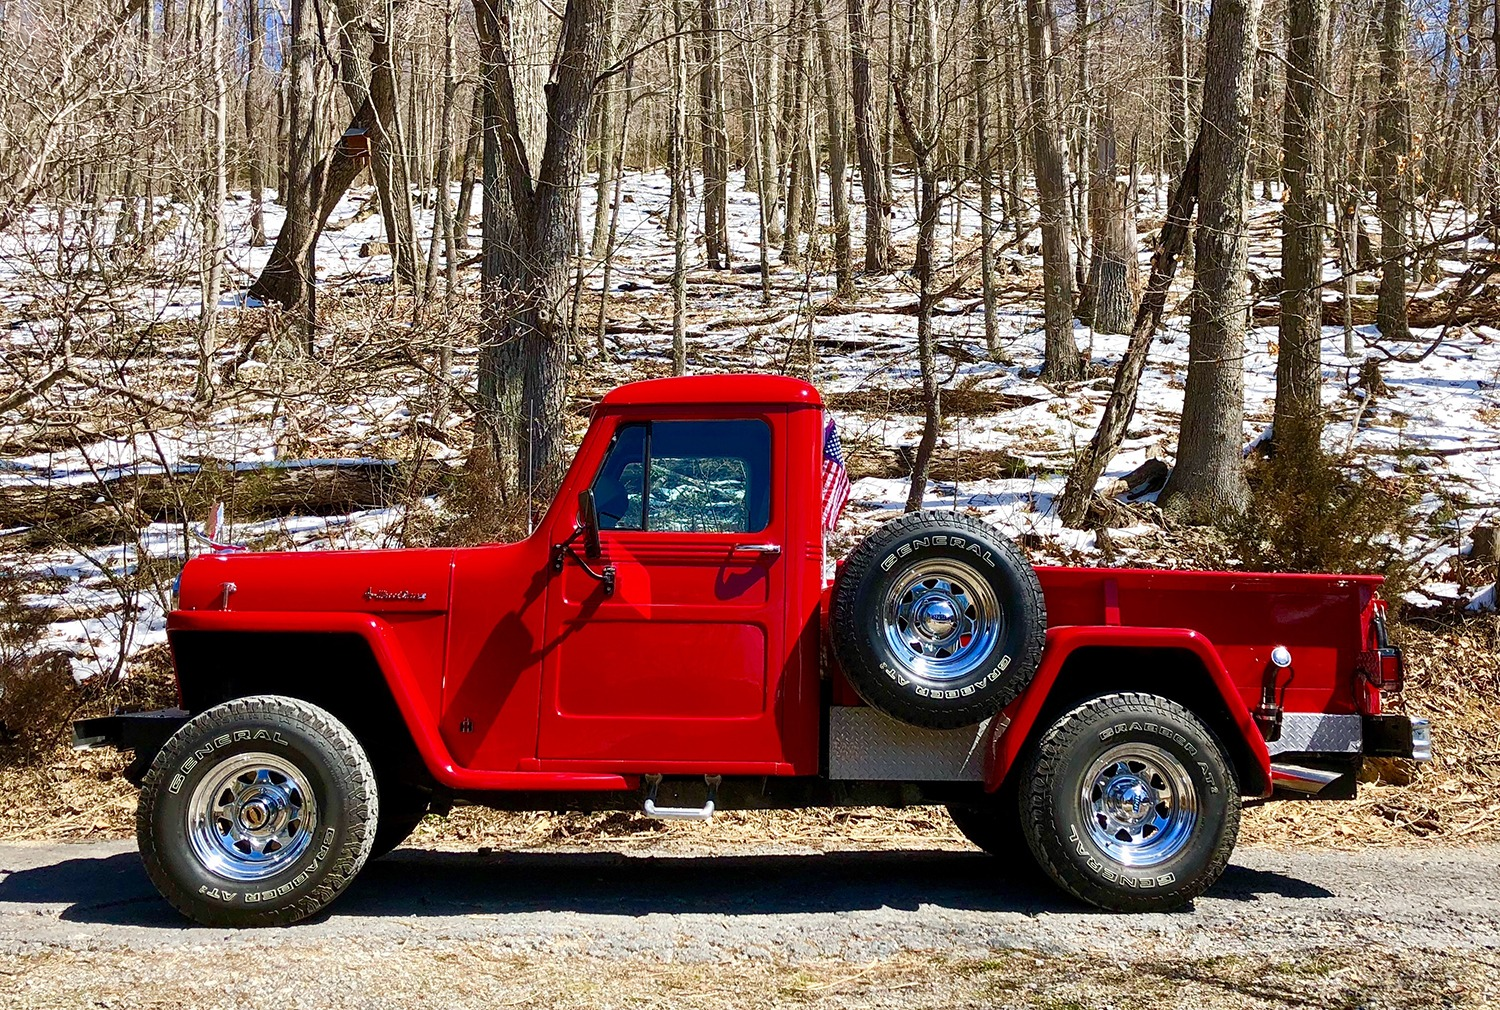 Used Rental Cars For Sale >> 1947 Jeep Willys Truck Stock # 1947WILLYSTRUCK for sale ...